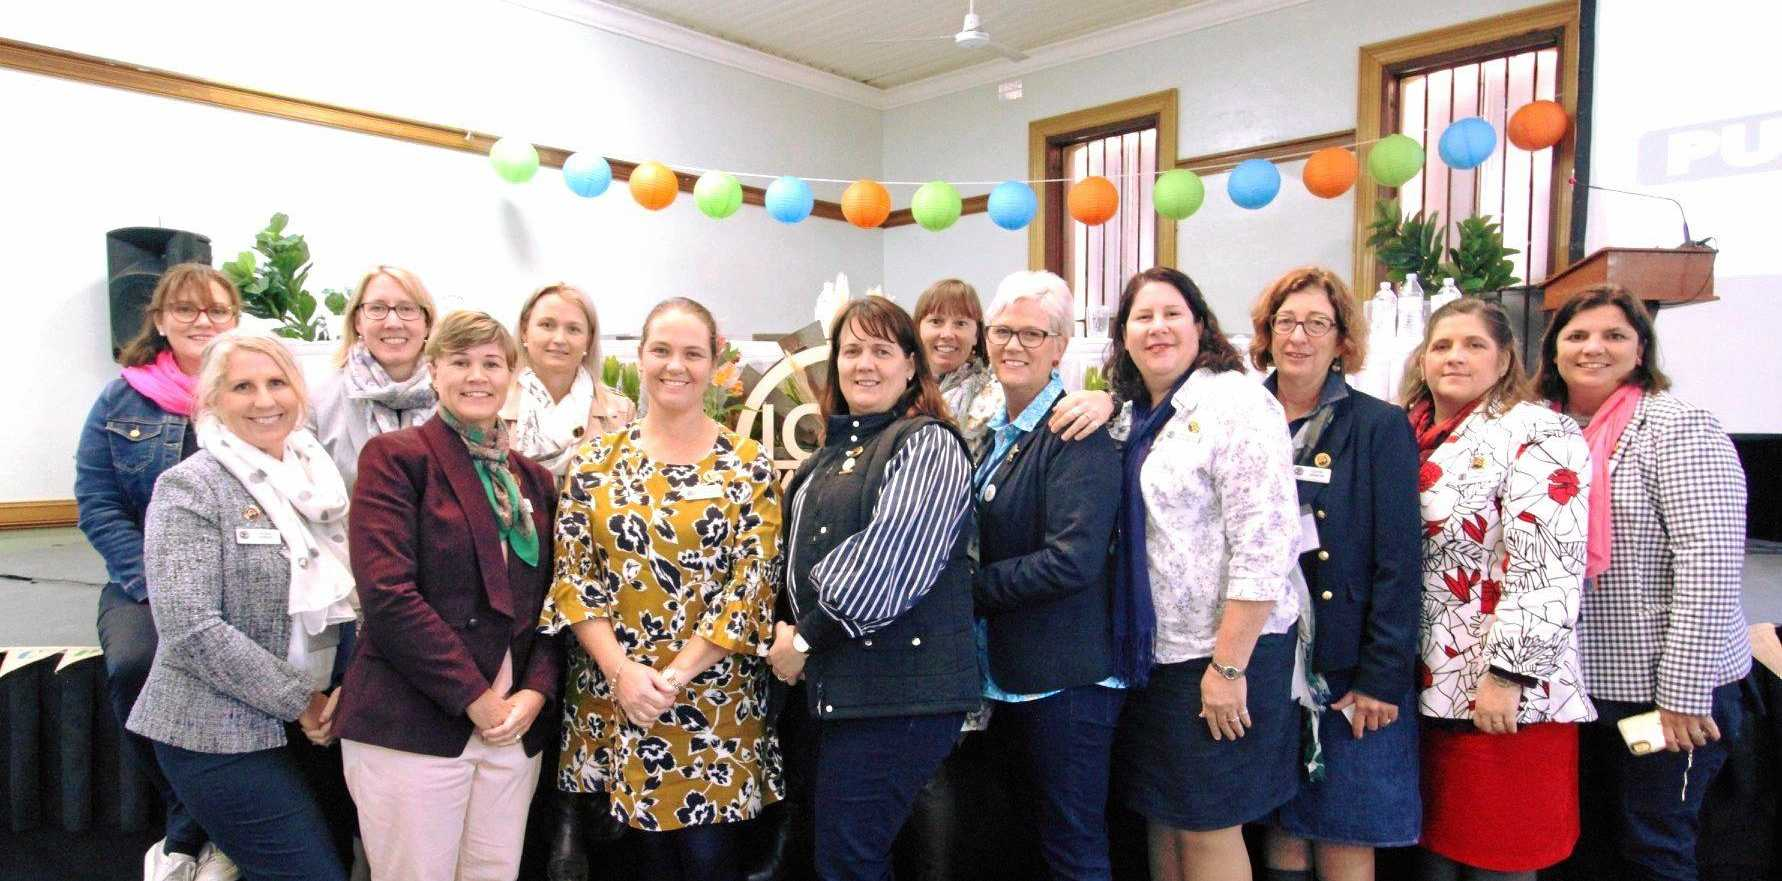 The newly elected ICPA Queensland State Council. Back: Kelly Ostwald, Louise Winten, Kasie Scott, Melissa Iland. Front: Jessie Persse, Kate Bradshaw, Tammie Irons, Amanda Clark, Sonia Spurdle, Michelle Freshwater, Louise Martin, Kim Donaldson, Wendy Henning.